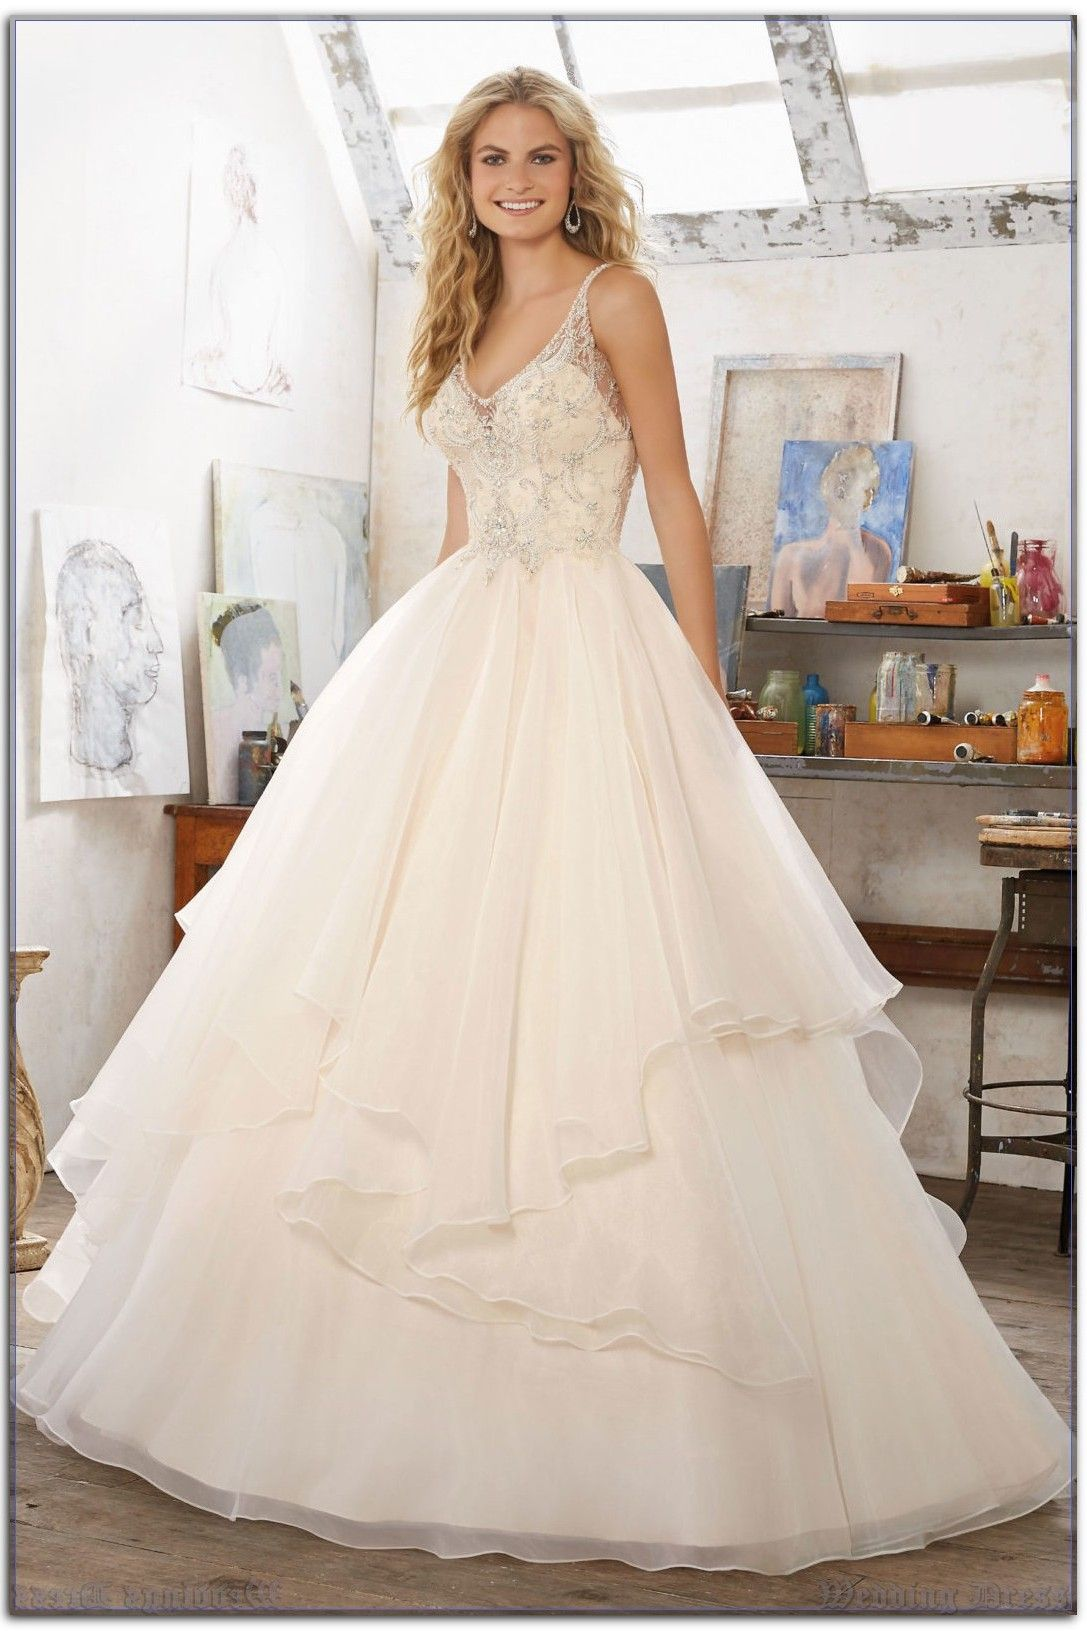 How To Learn Weddings Dress